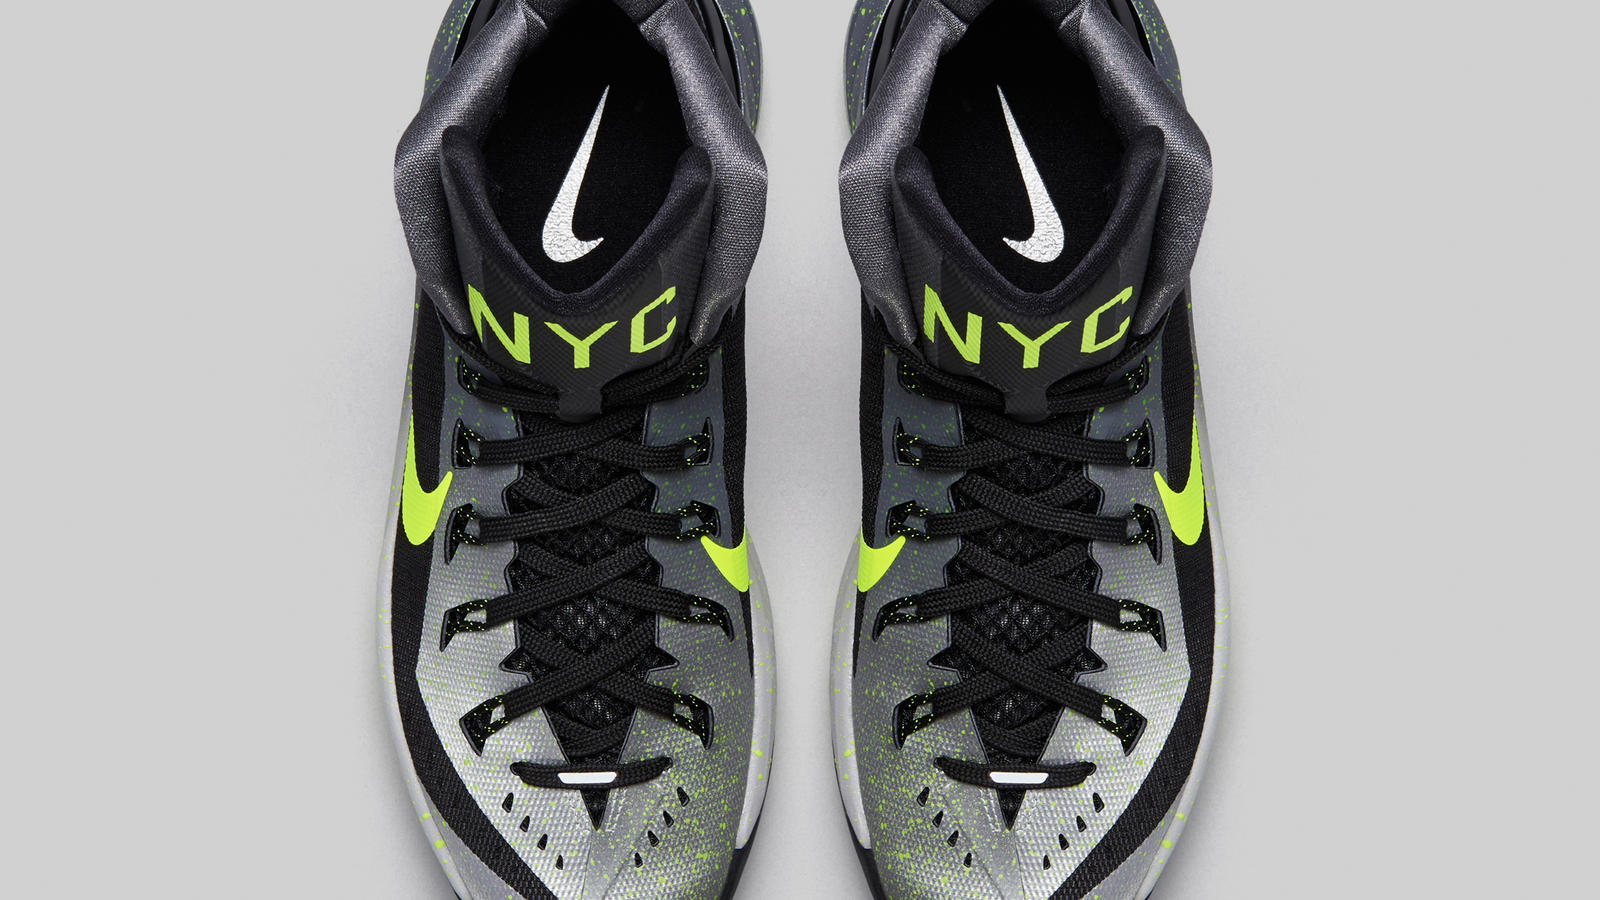 huge selection of 1e018 a69ff sale the nike hyperdunk 2014 city pack will make its on court debut at the  2014